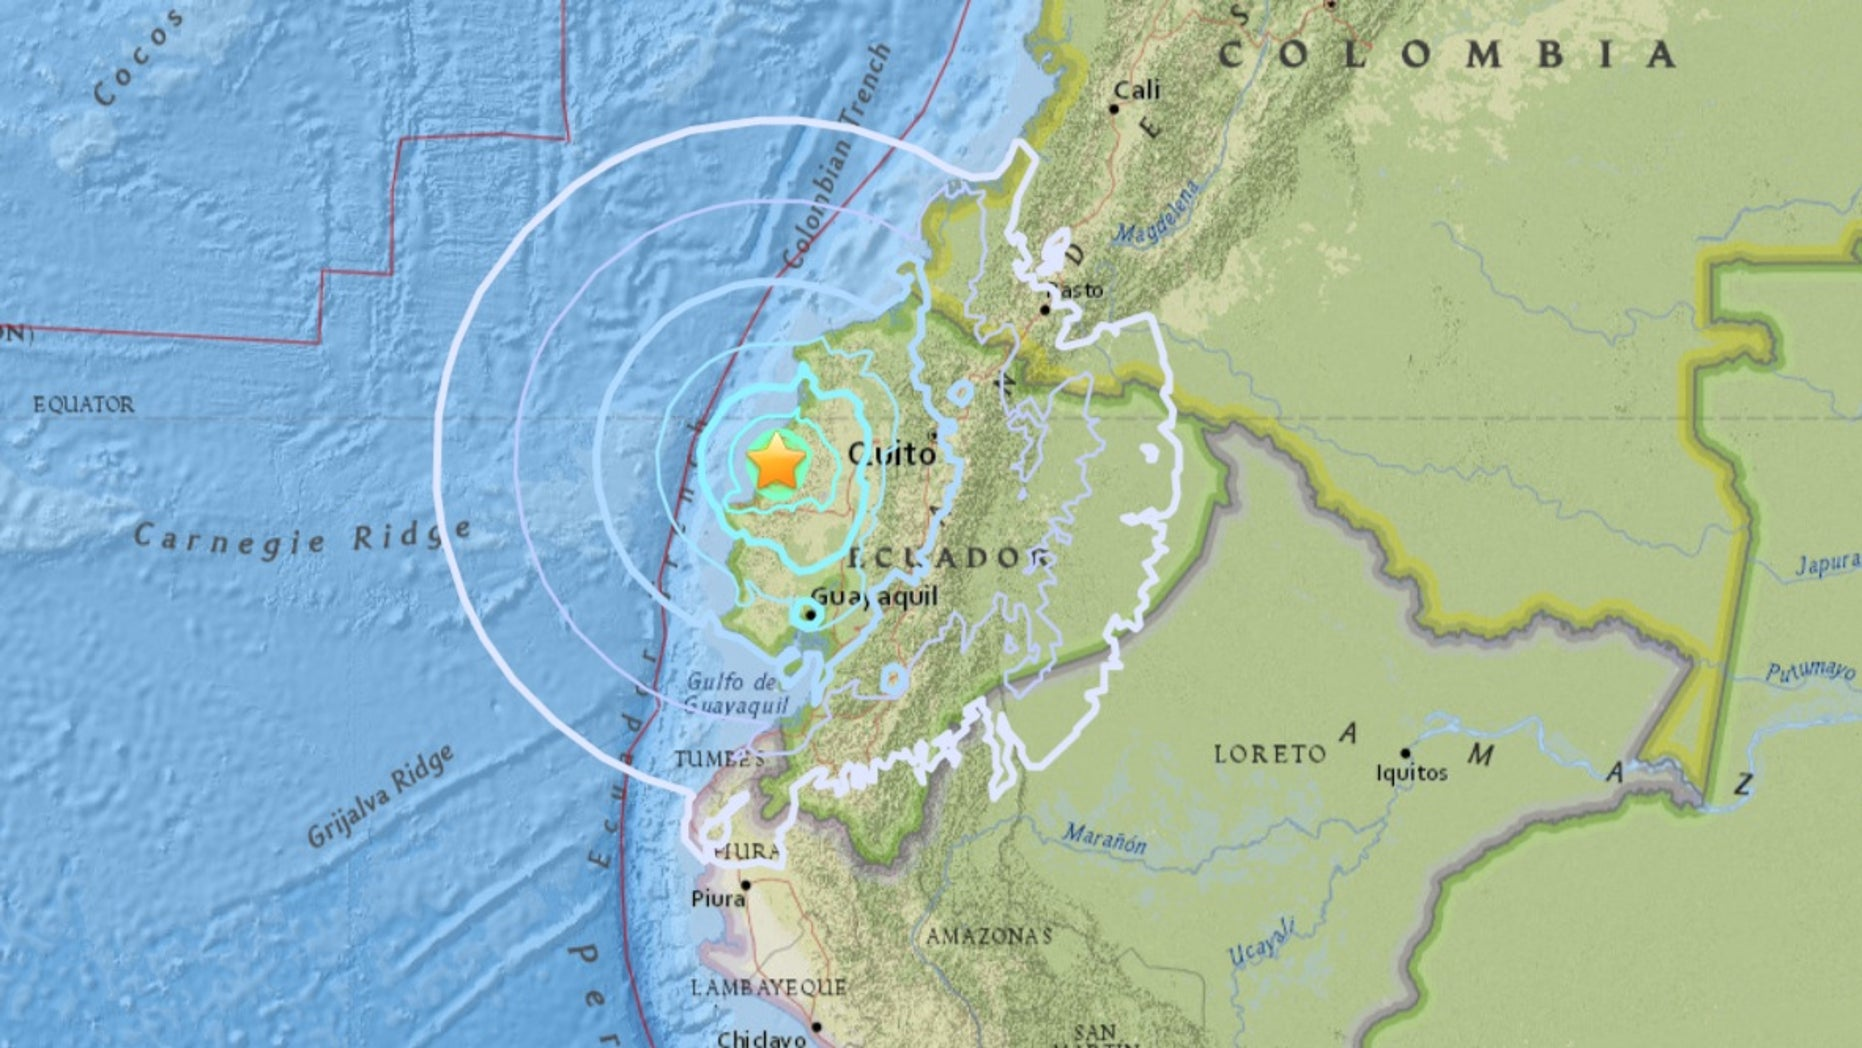 The earthquake was was centered around the town of San Vicente, Ecuador.